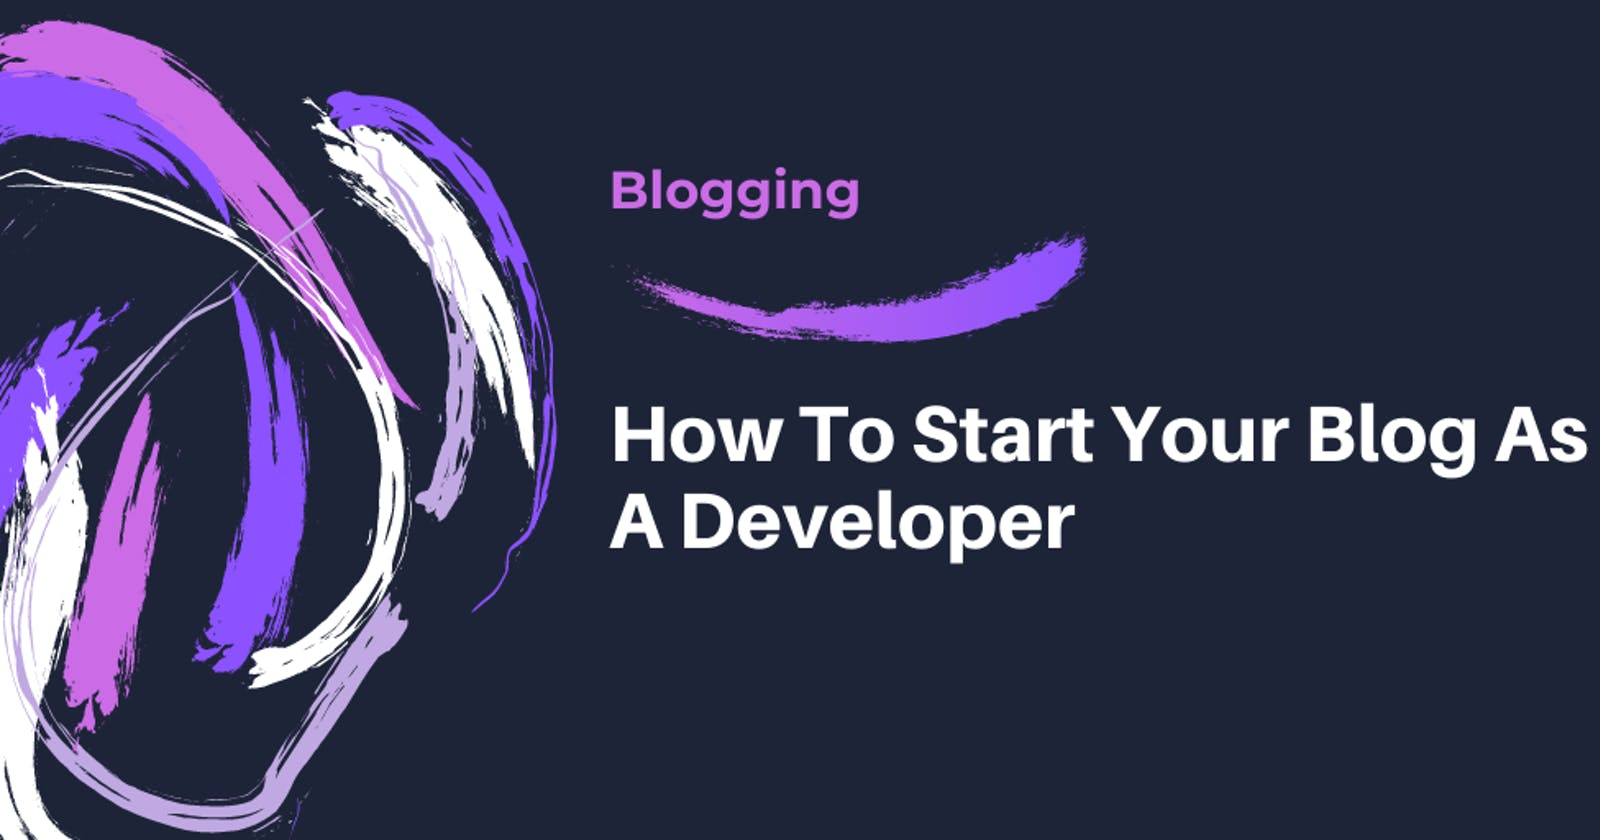 How To Start Your Blog As A Developer